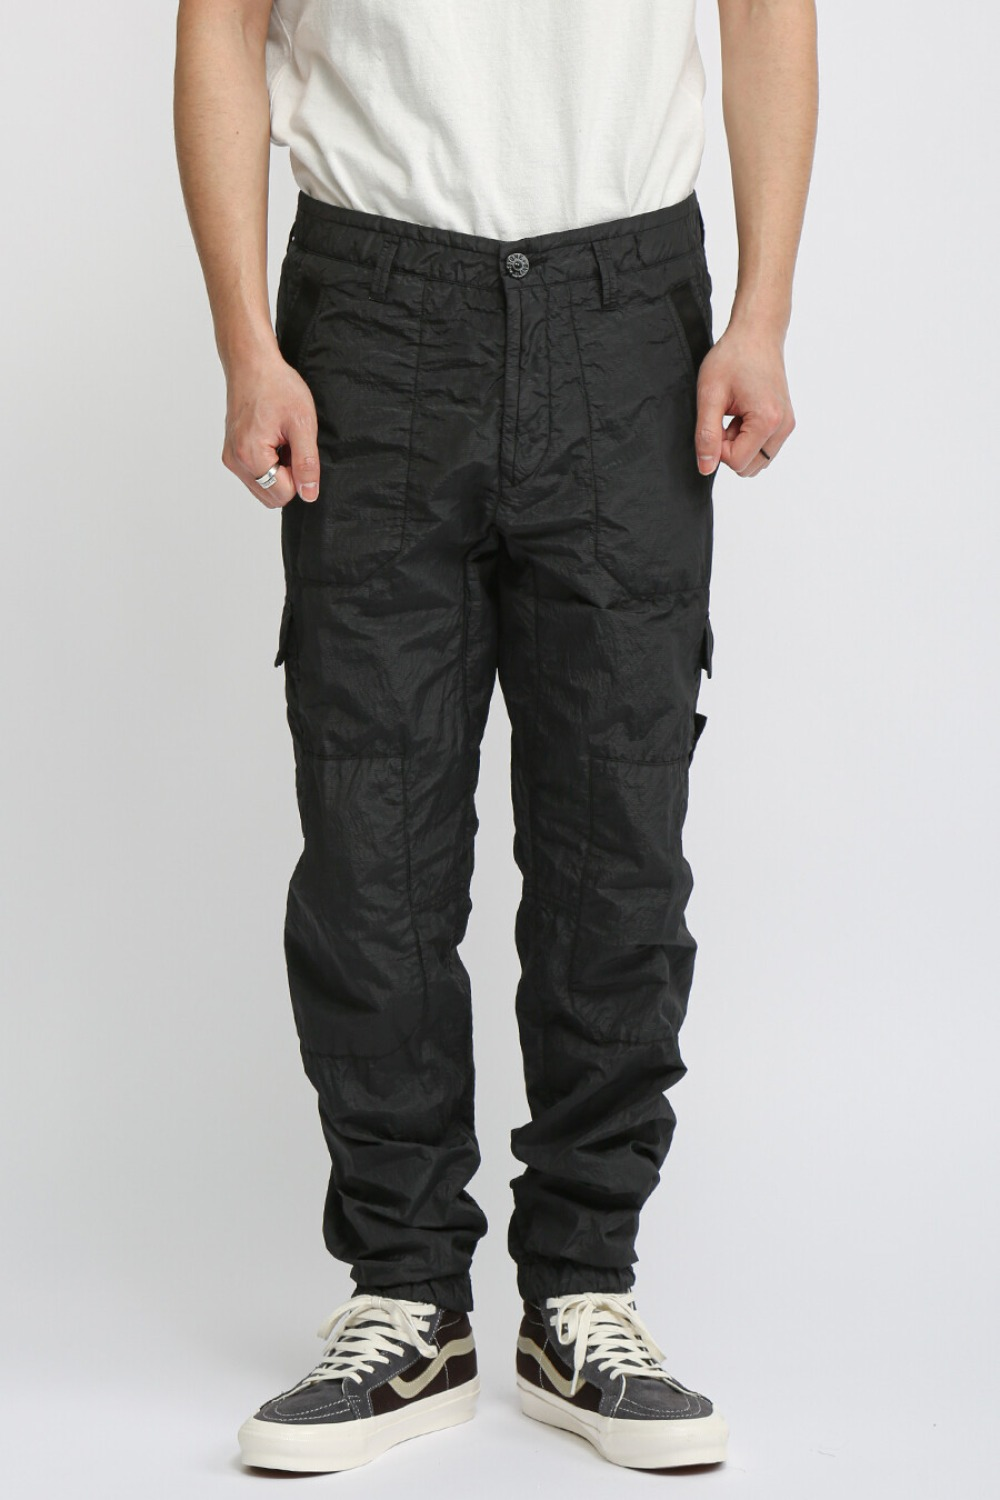 S.I.PA/PL SEERSUCKER-TC CARGO PANTS BLACK